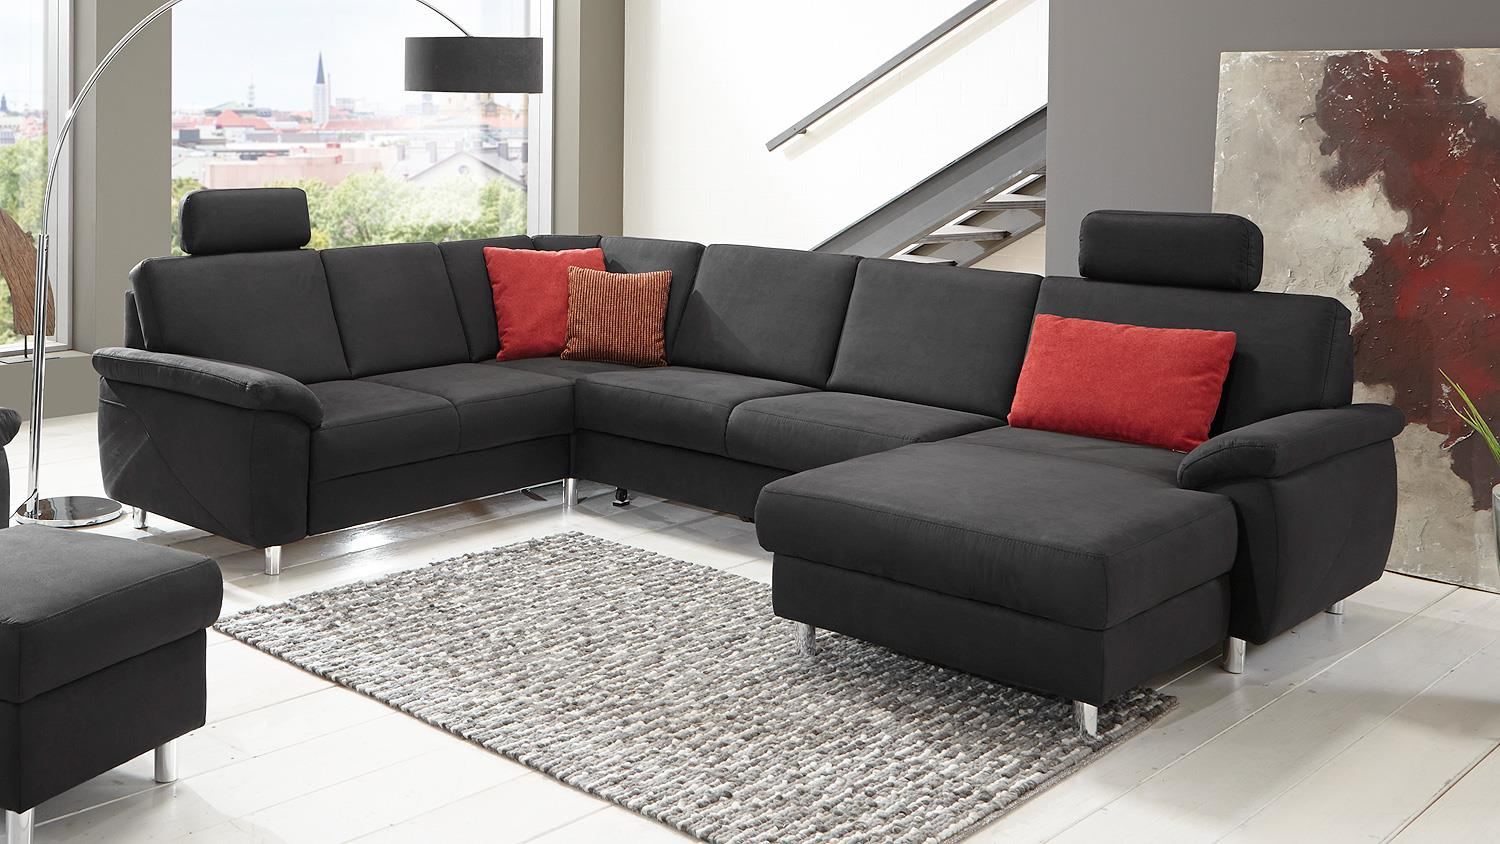 wohnlandschaft winston ecksofa sofa polsterm bel anthrazit. Black Bedroom Furniture Sets. Home Design Ideas